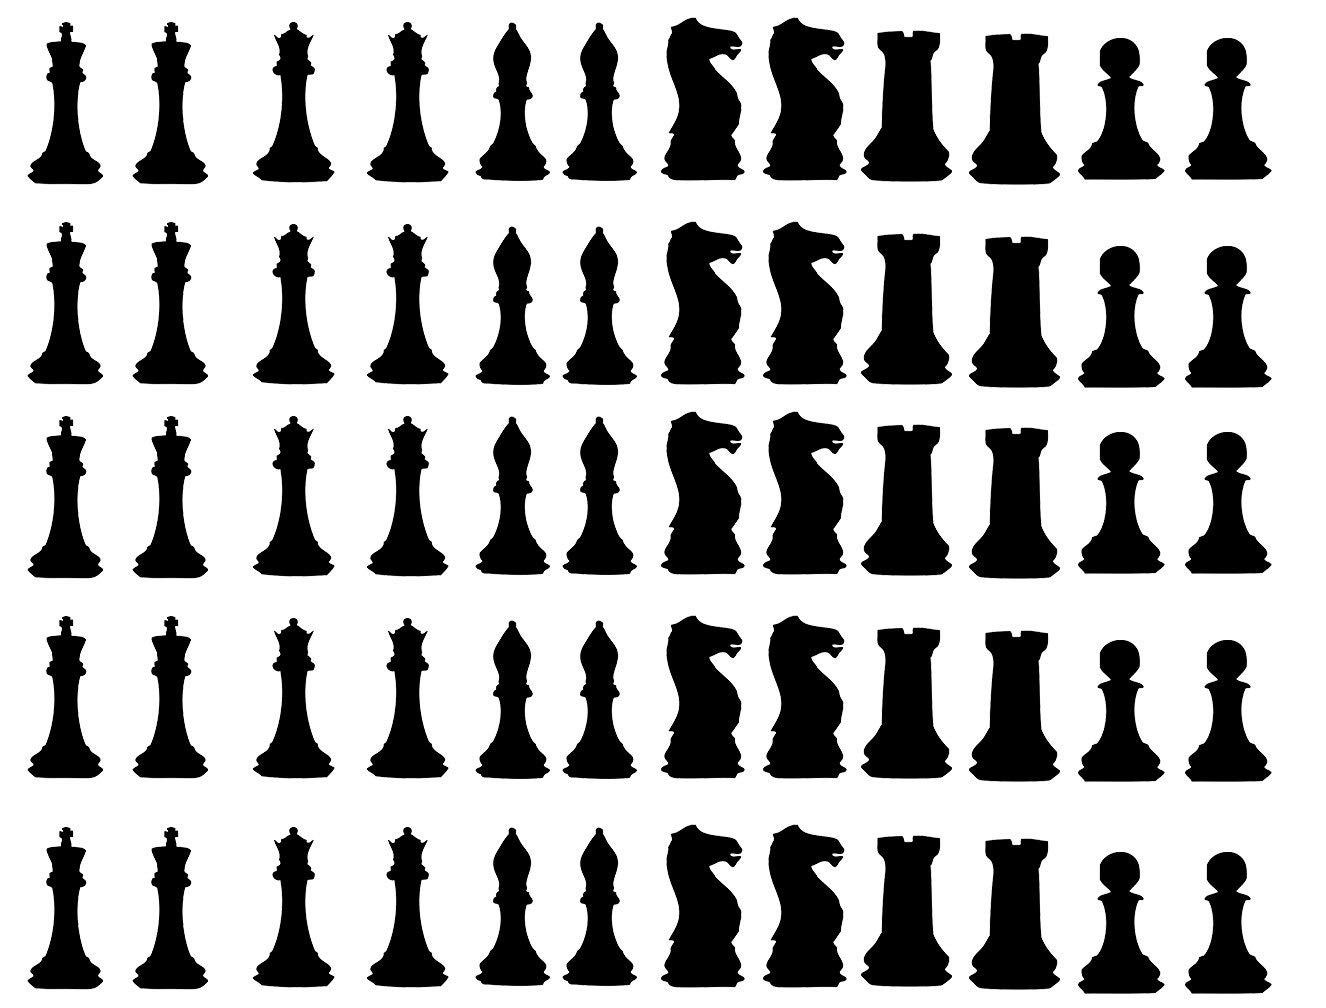 Removable Wallpaper Envelope Sealers Window Decals Gift Favor Stickers Chess Wall Art 60 Chess Stickers Chess Figures Party Stickers